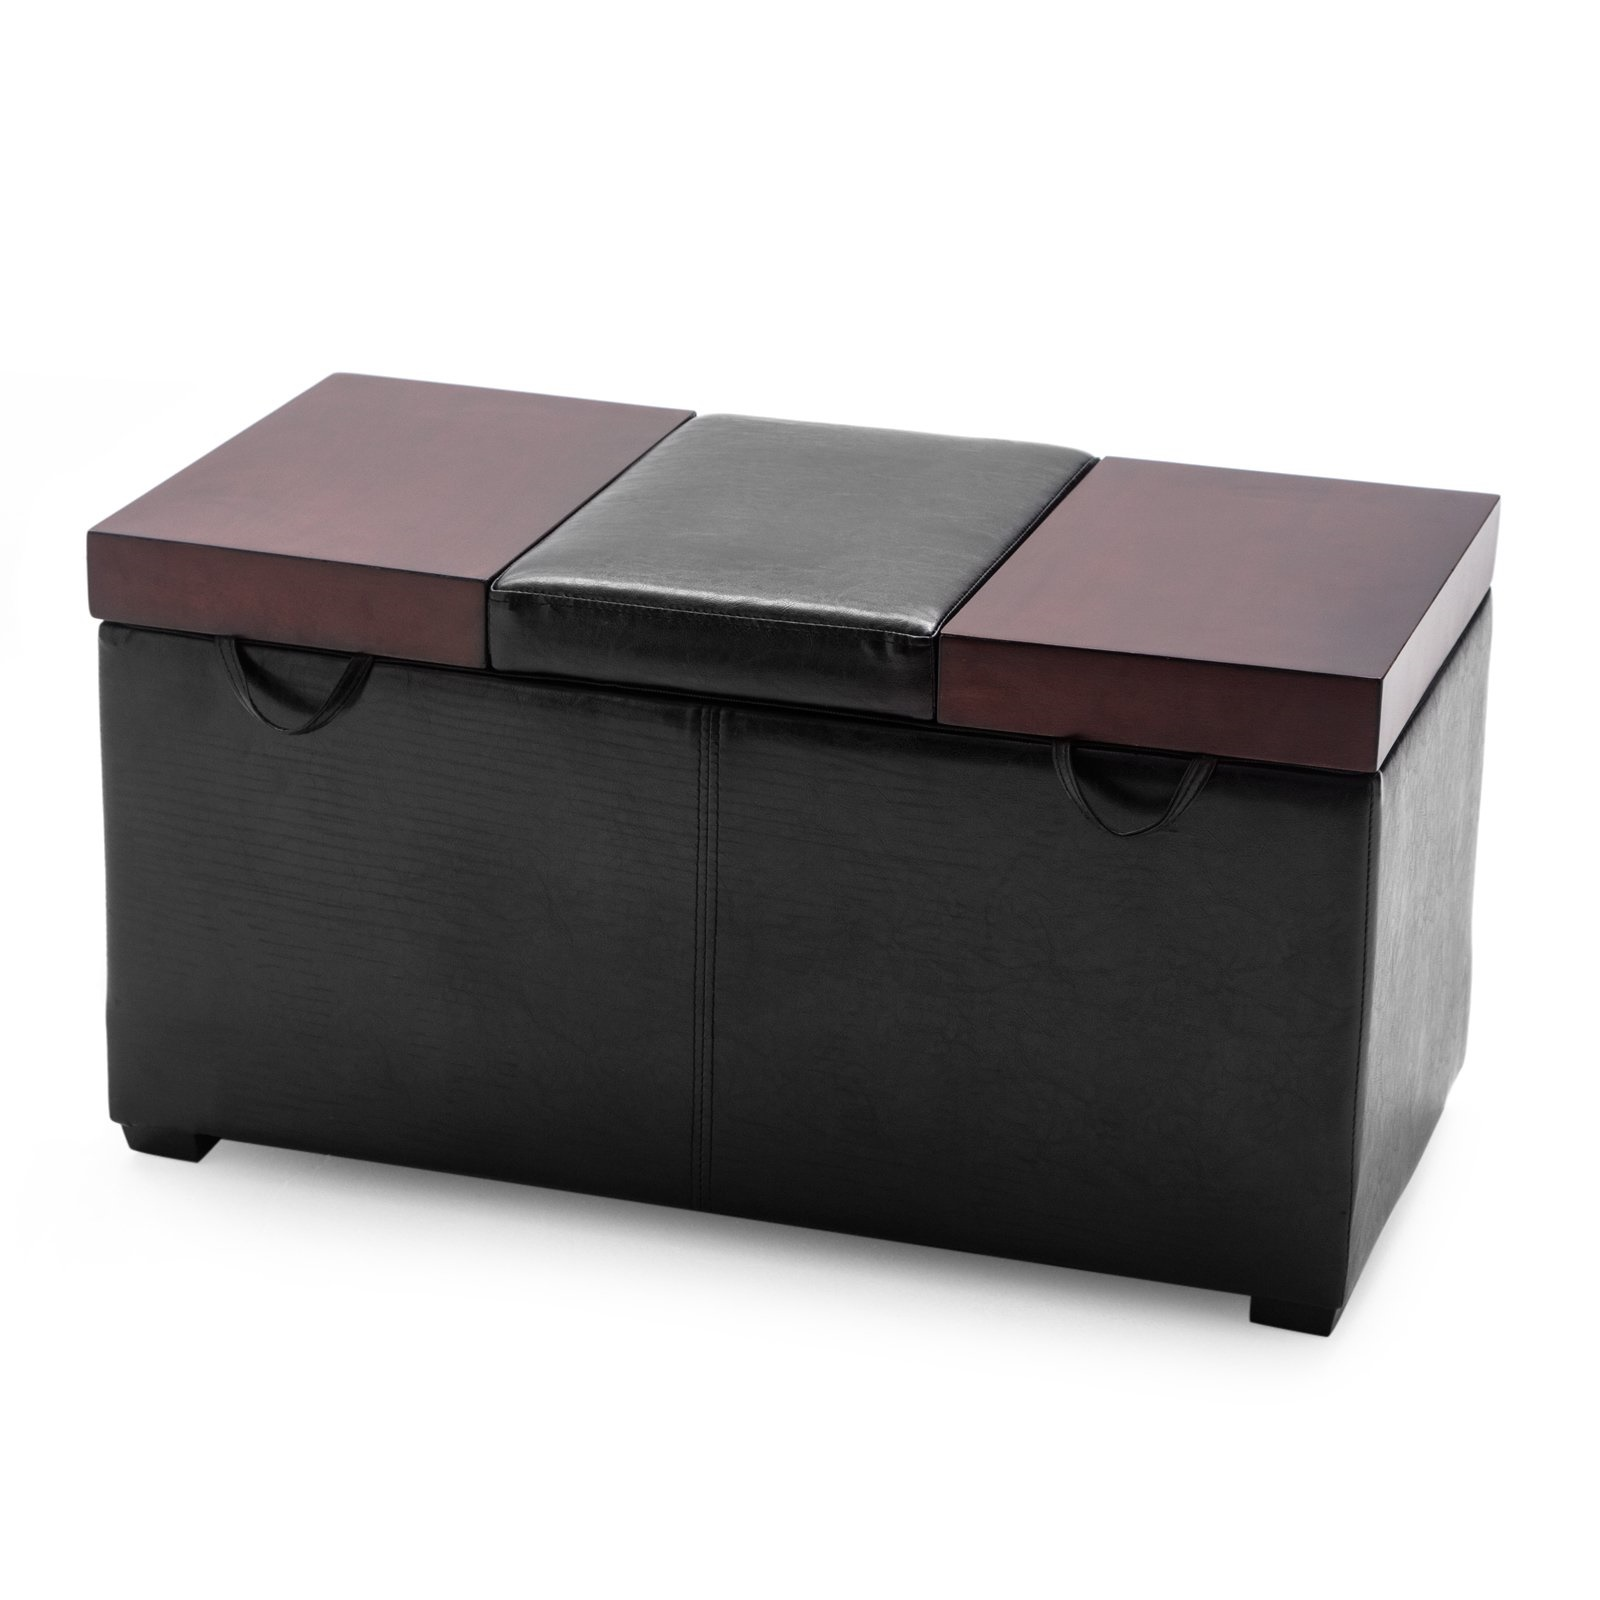 Black Ottoman Storage Lift Top Bench Leather Living Room